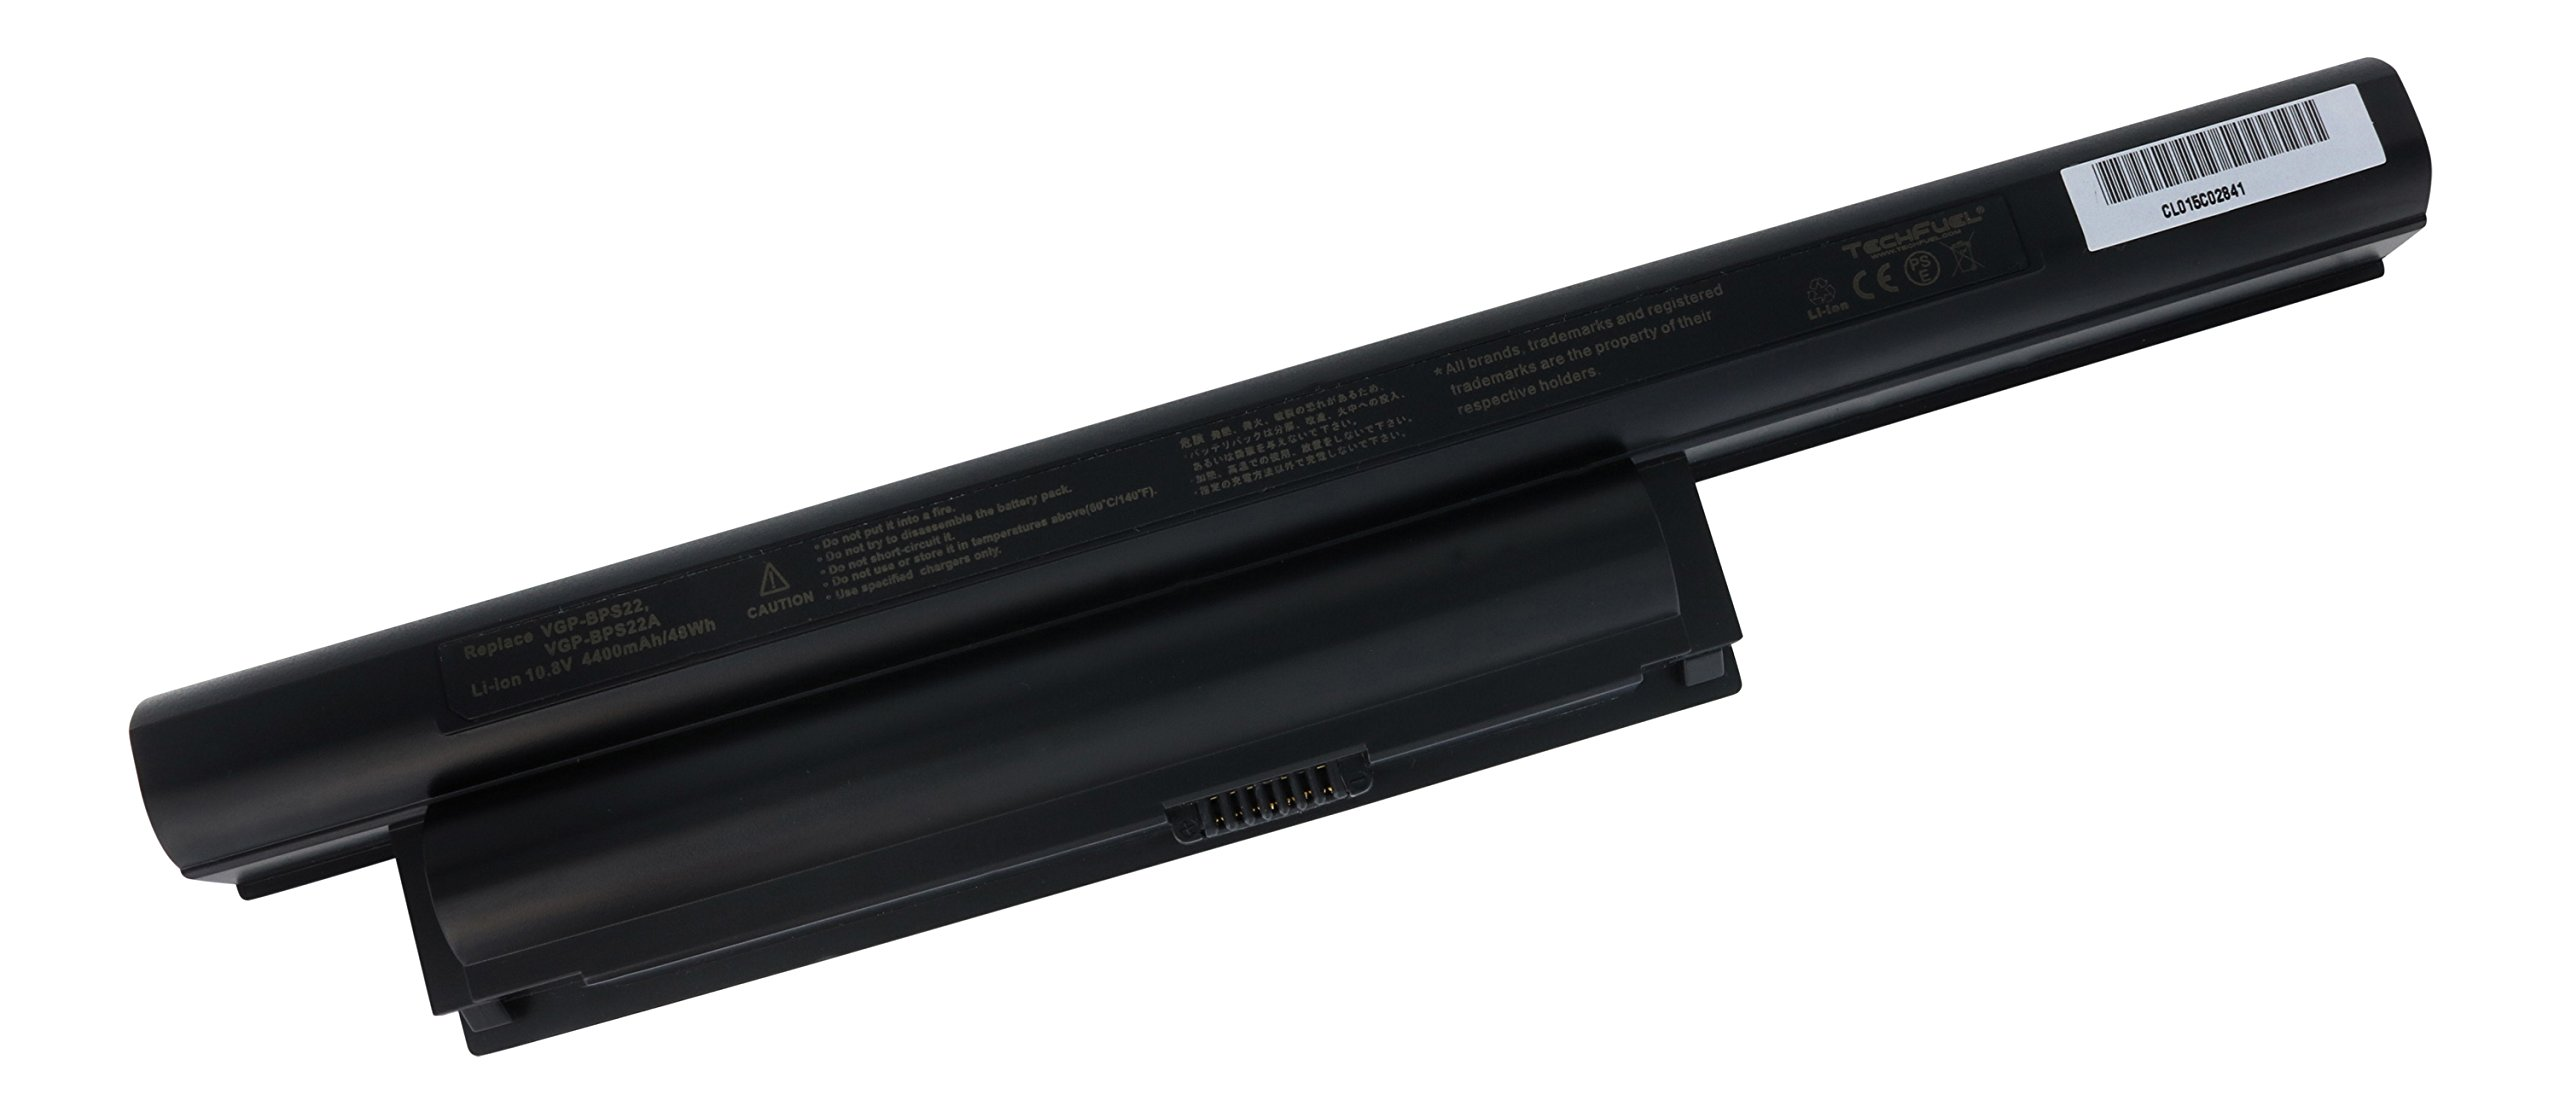 TechFuel VGP-BPS22 VGP-BPS22A Fully Compatible Replacement Battery for Sony PCG-61315L VPC-EA VPC-EB VPC-EC VPC-EE VPC-EF Series Laptops - Professional 6-cell, 48Wh 10.8V Li-ion Battery